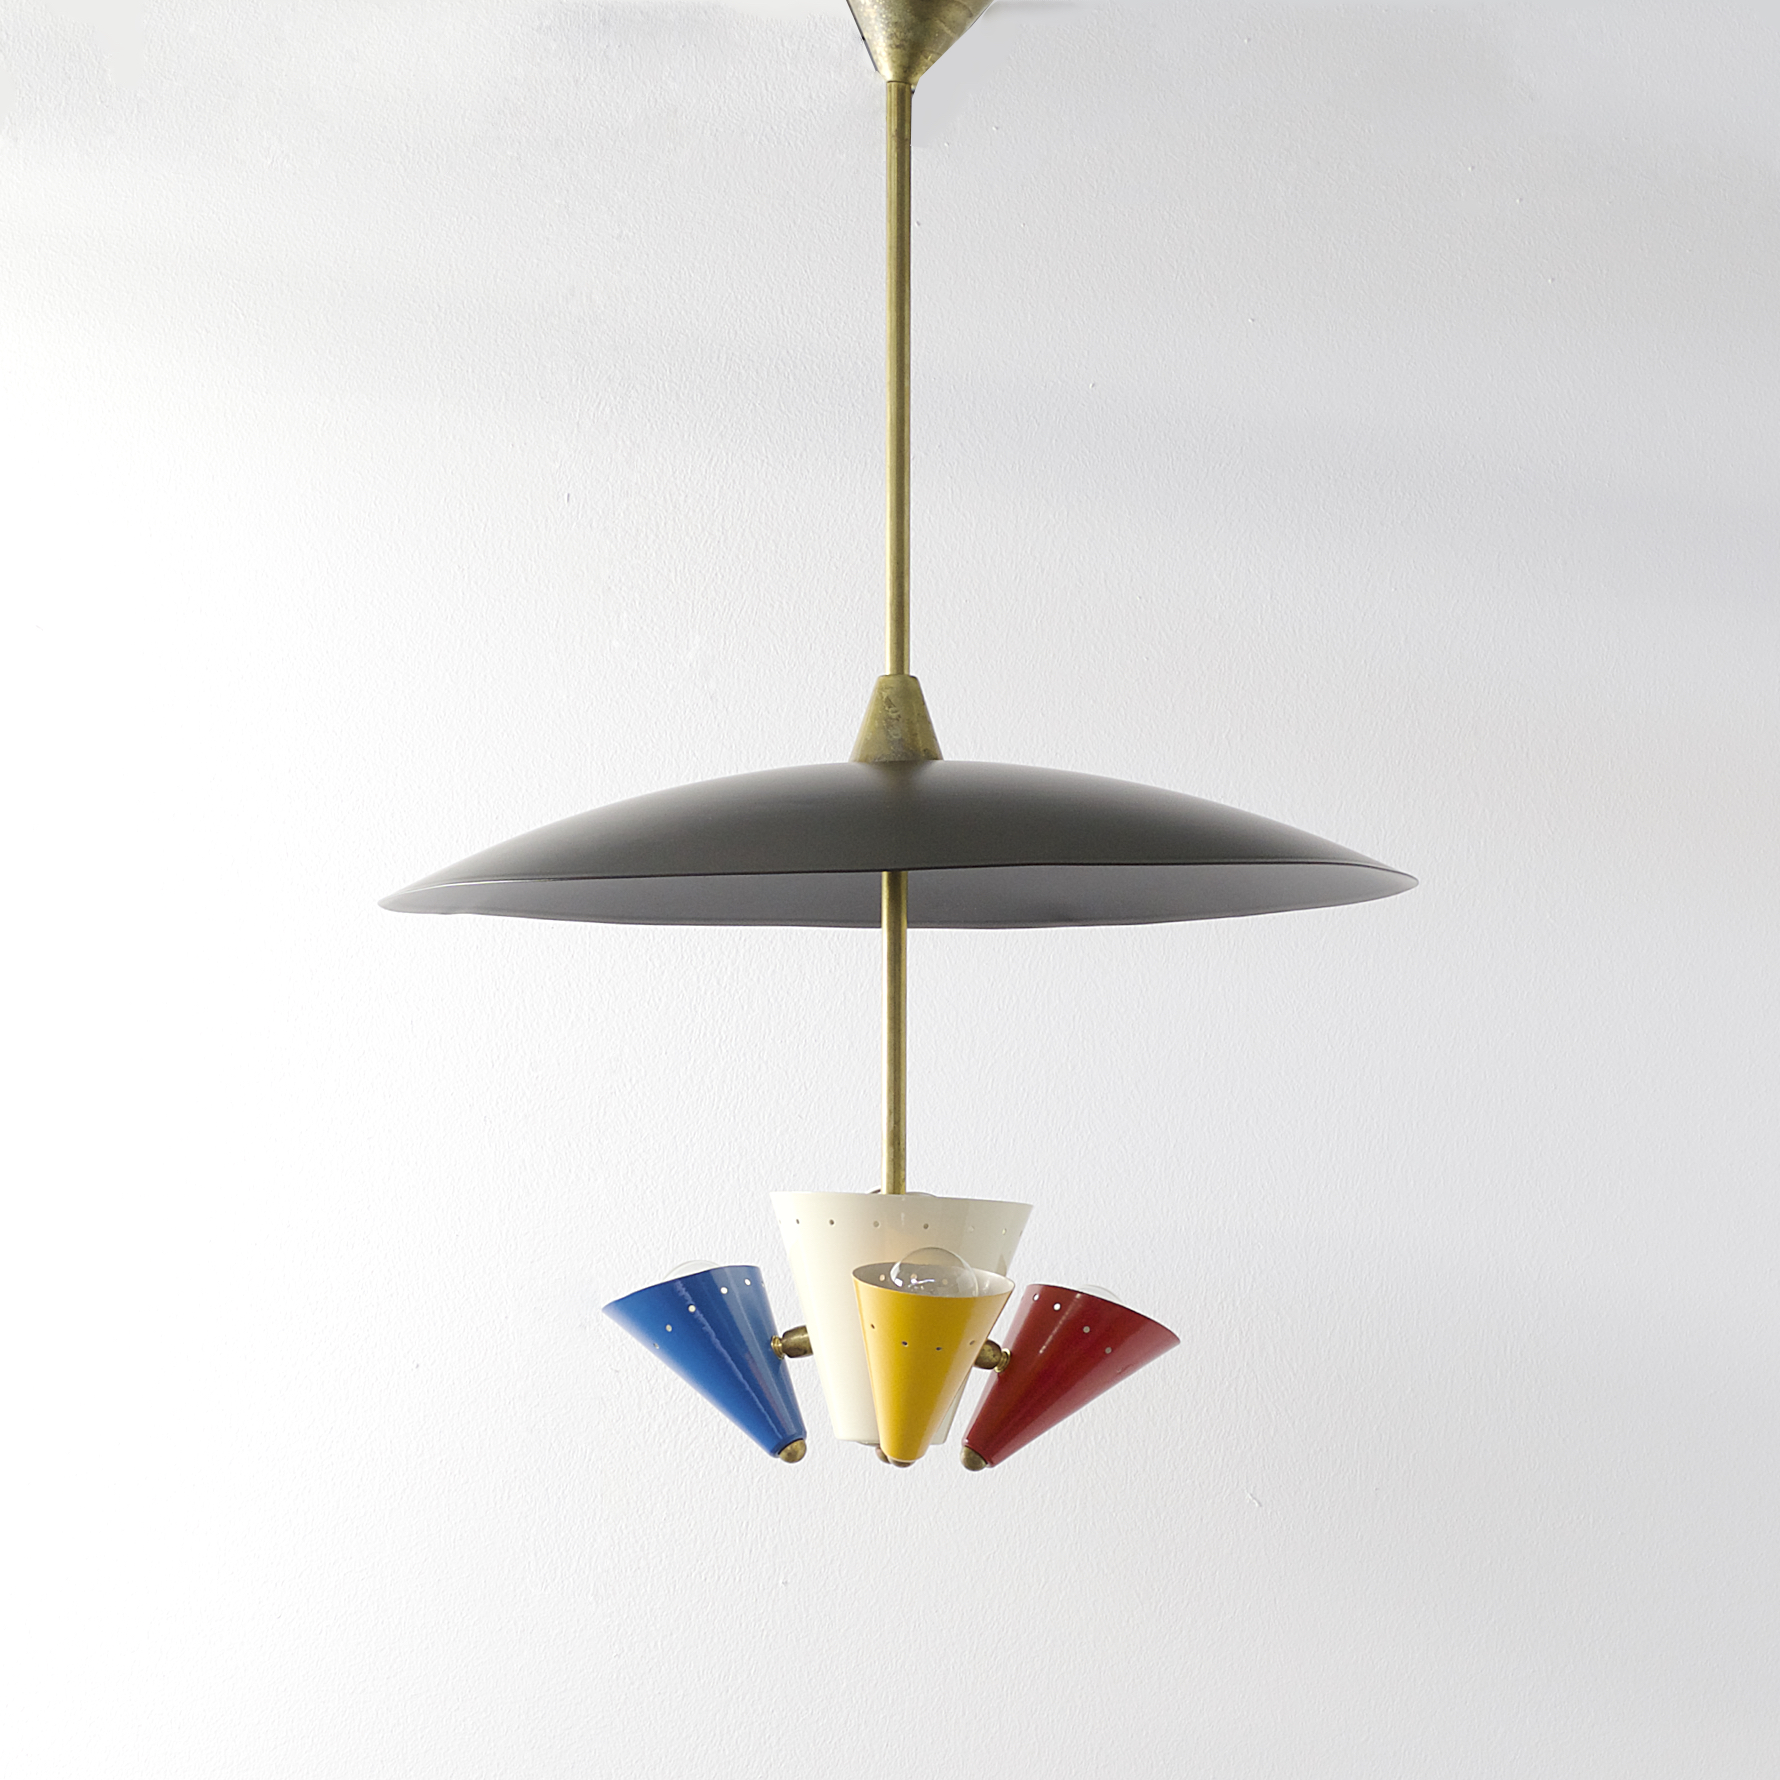 Hanging Lamp Nl: 50s Ceiling Hanging Lamp By Stilnovo Italy